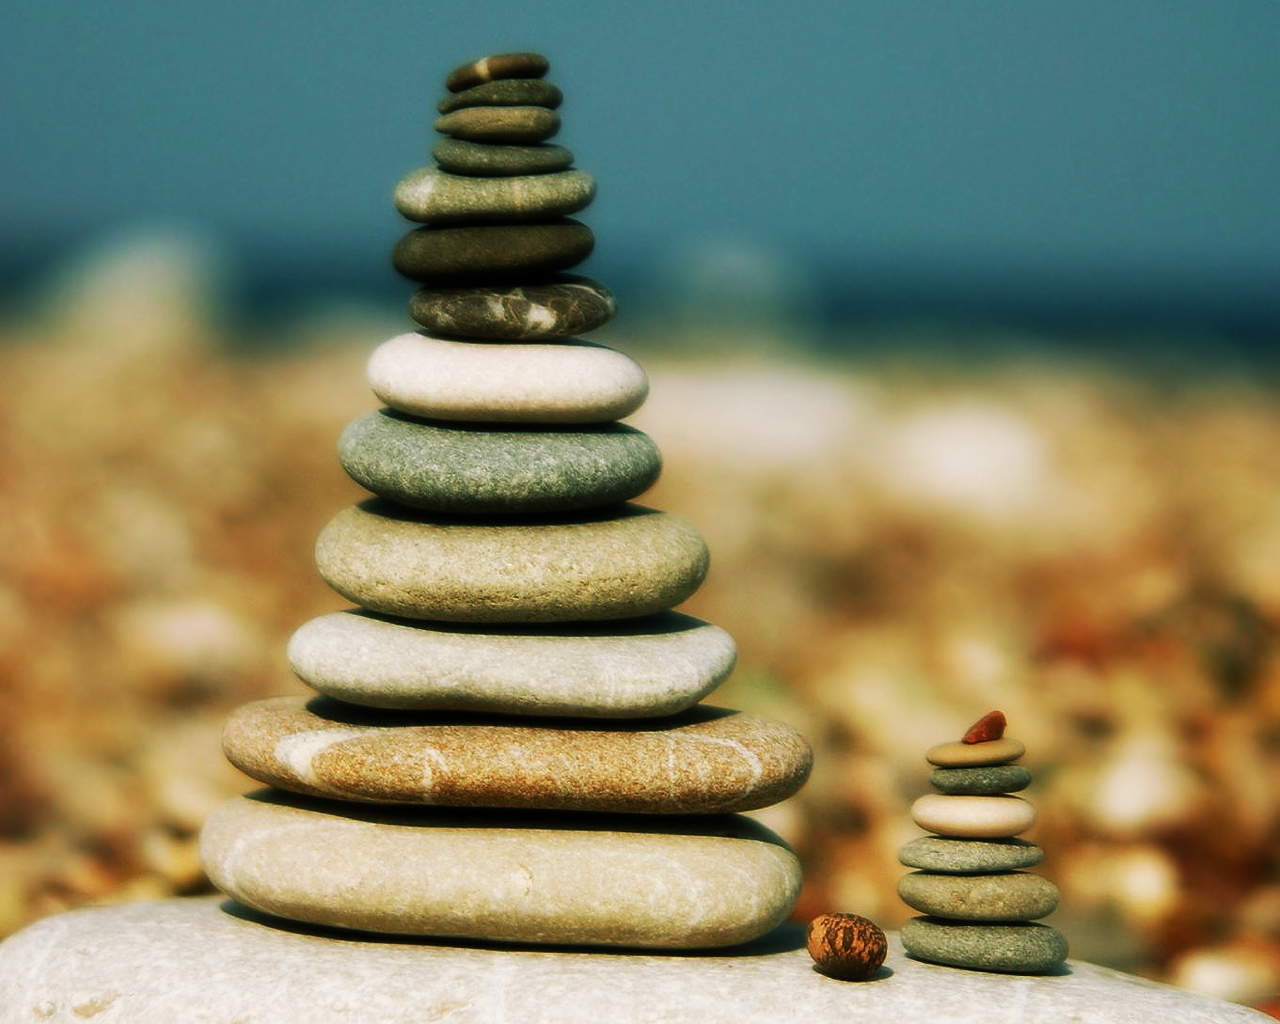 rocks stones Zen pebbles HD Wallpaper